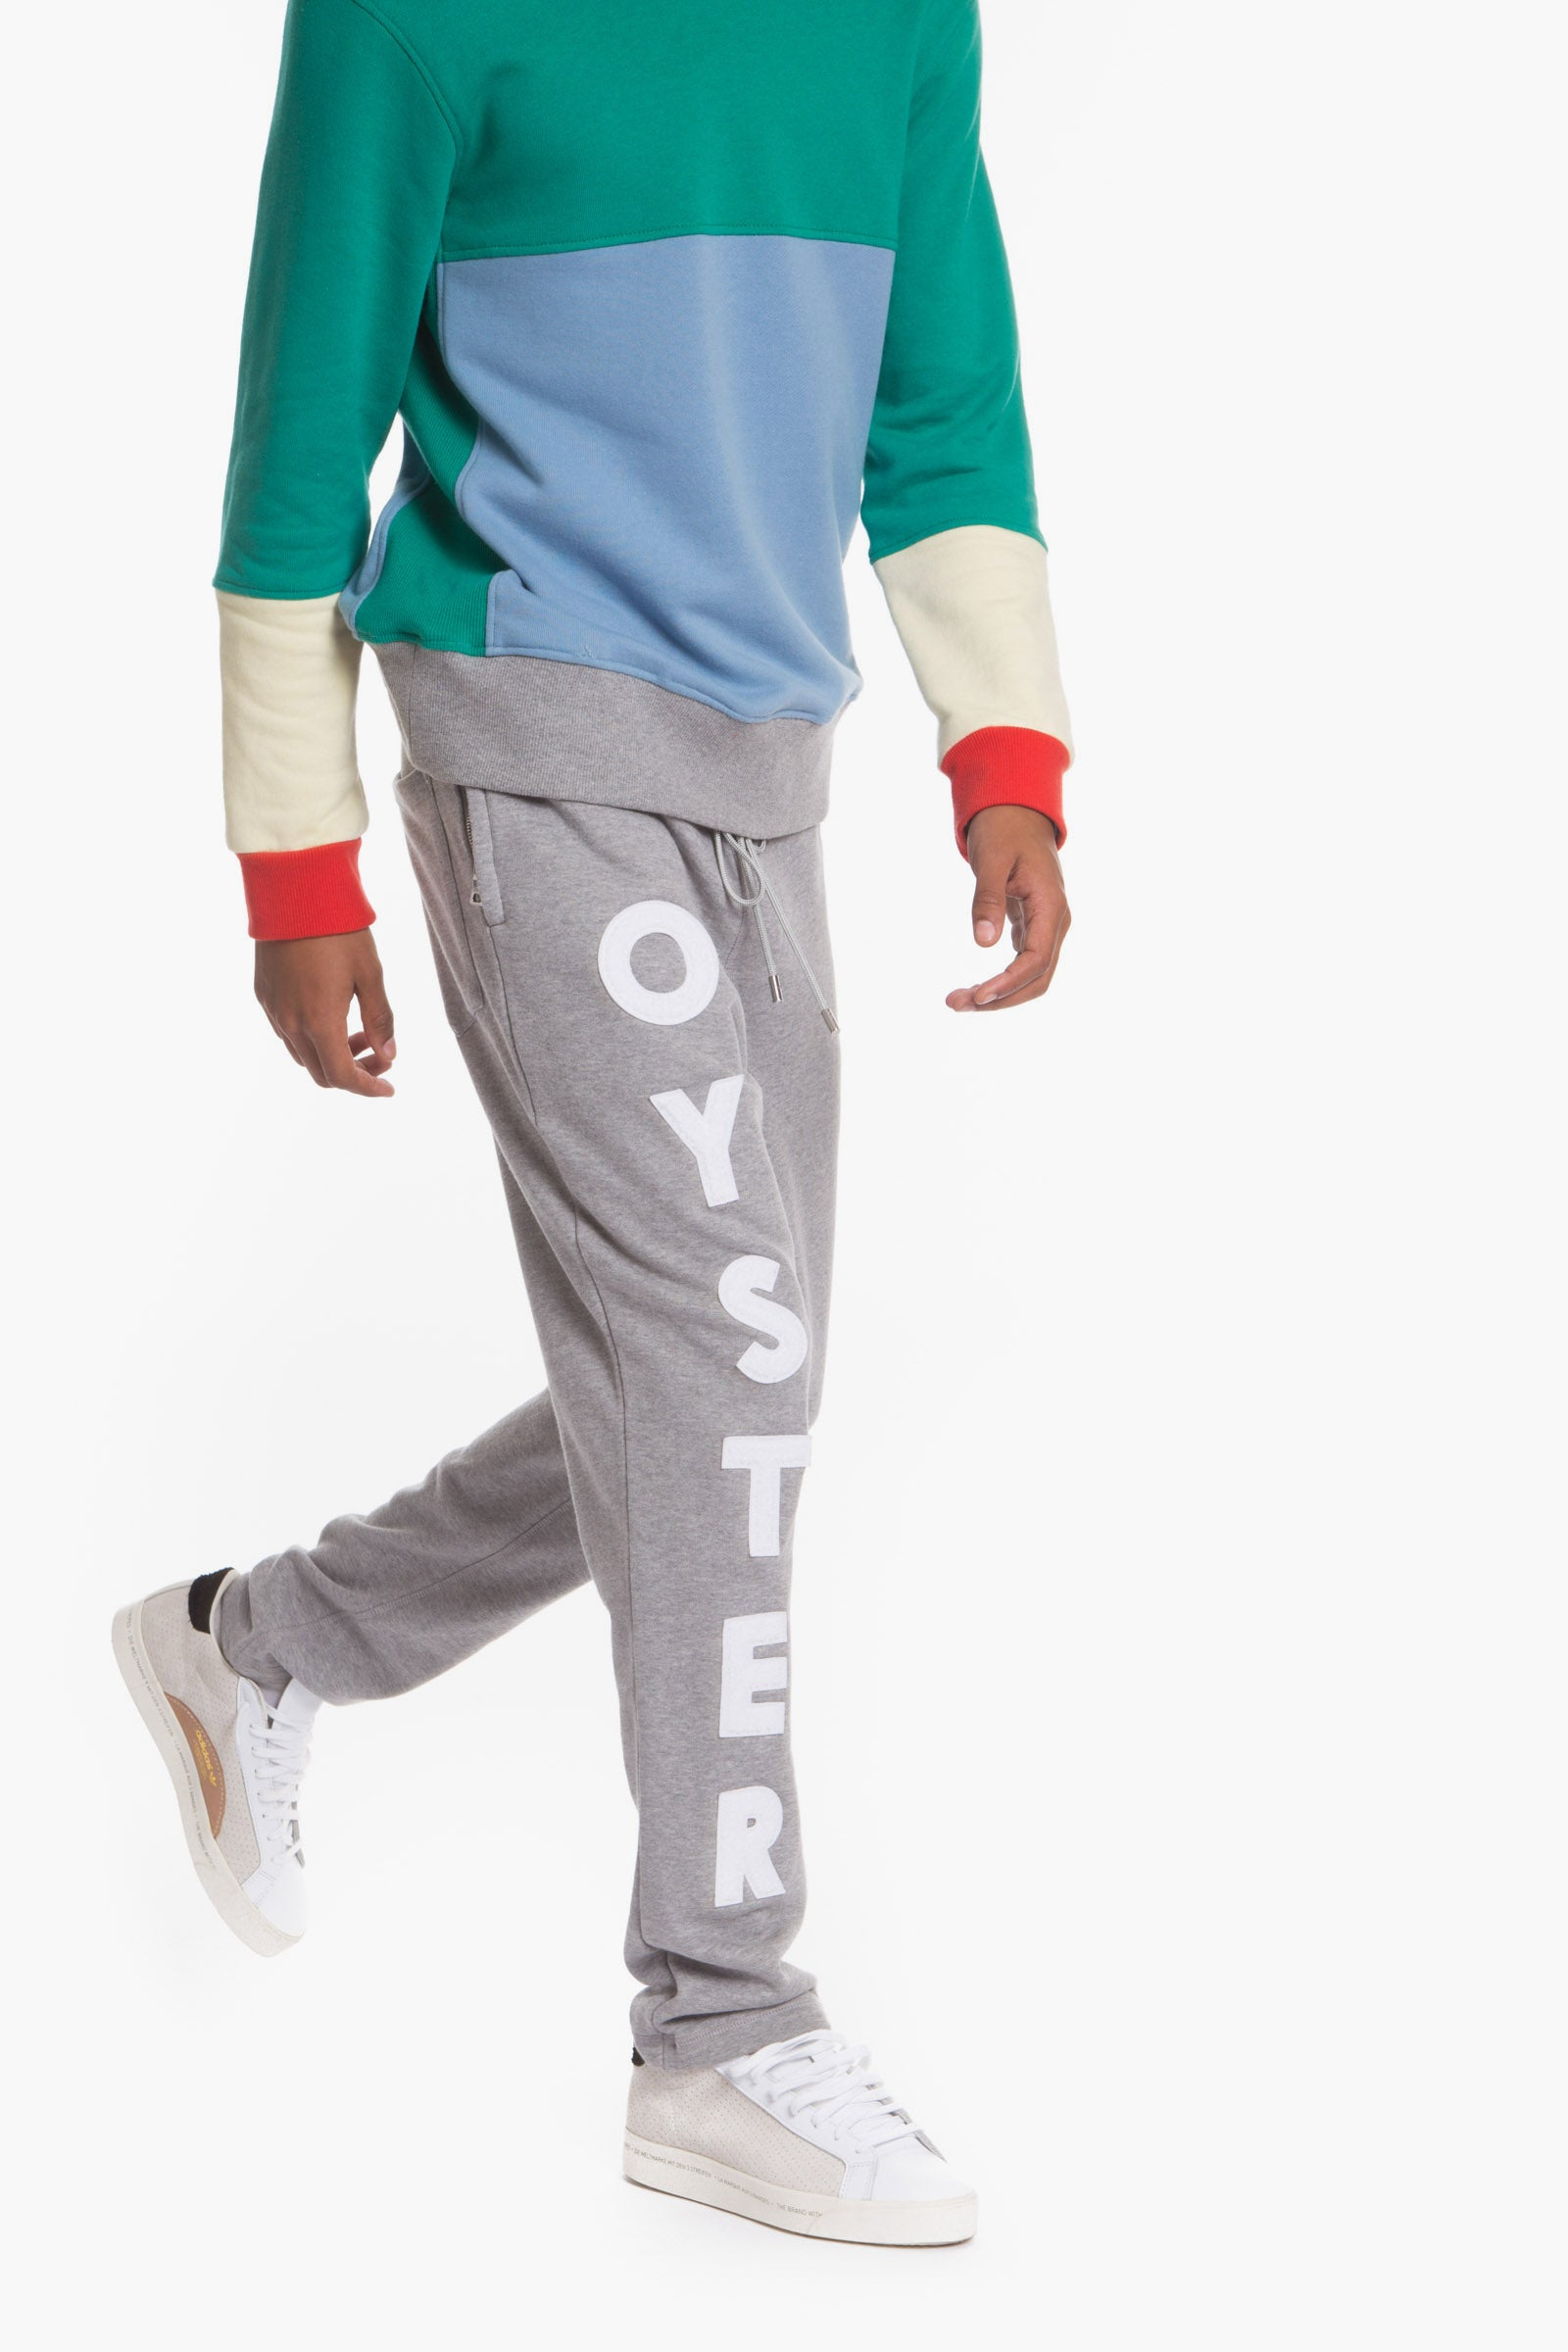 OYSTER LOGO CHENILLE SWEATPANT (GREY)